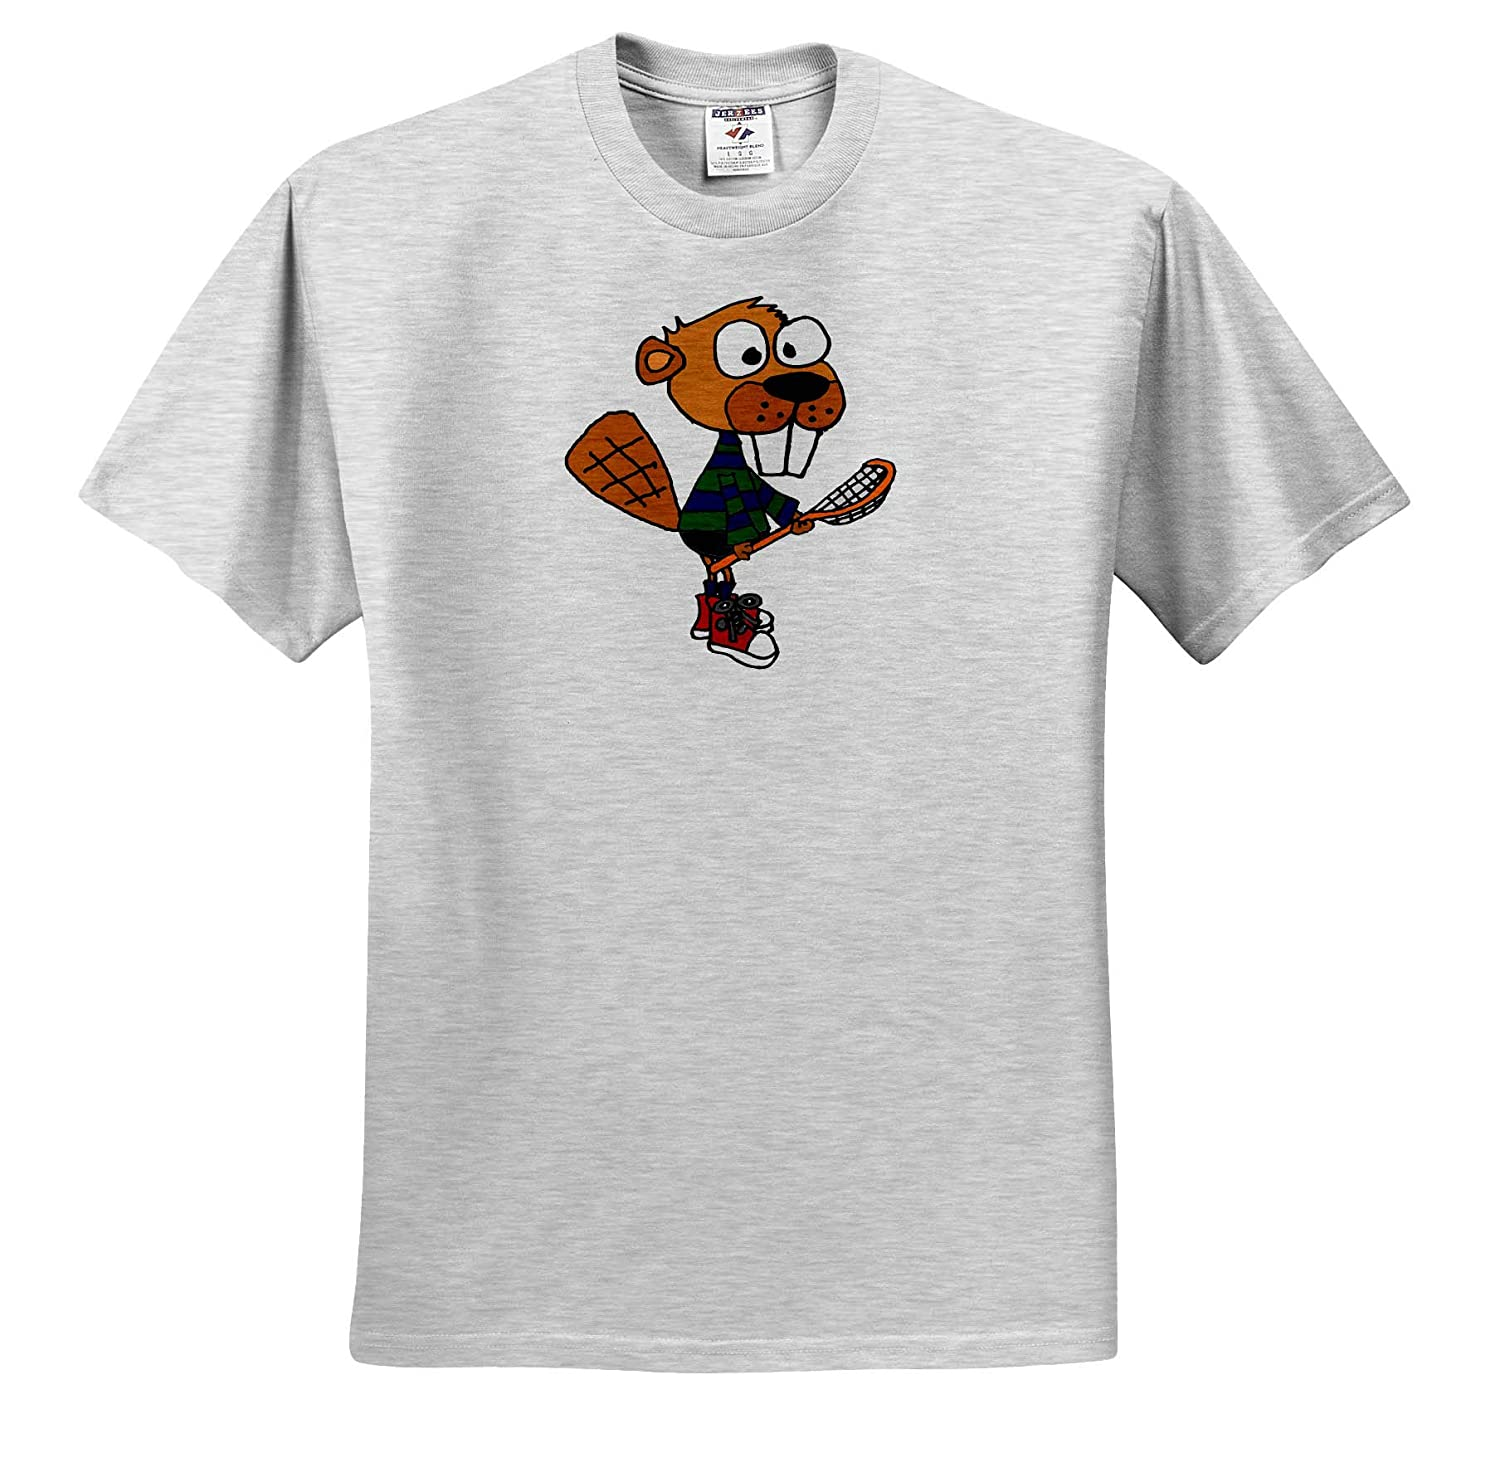 ts/_319332 3dRose All Smiles Art Funny Cute Beaver Playing Lacrosse Sports Cartoon Adult T-Shirt XL Sports and Hobbies